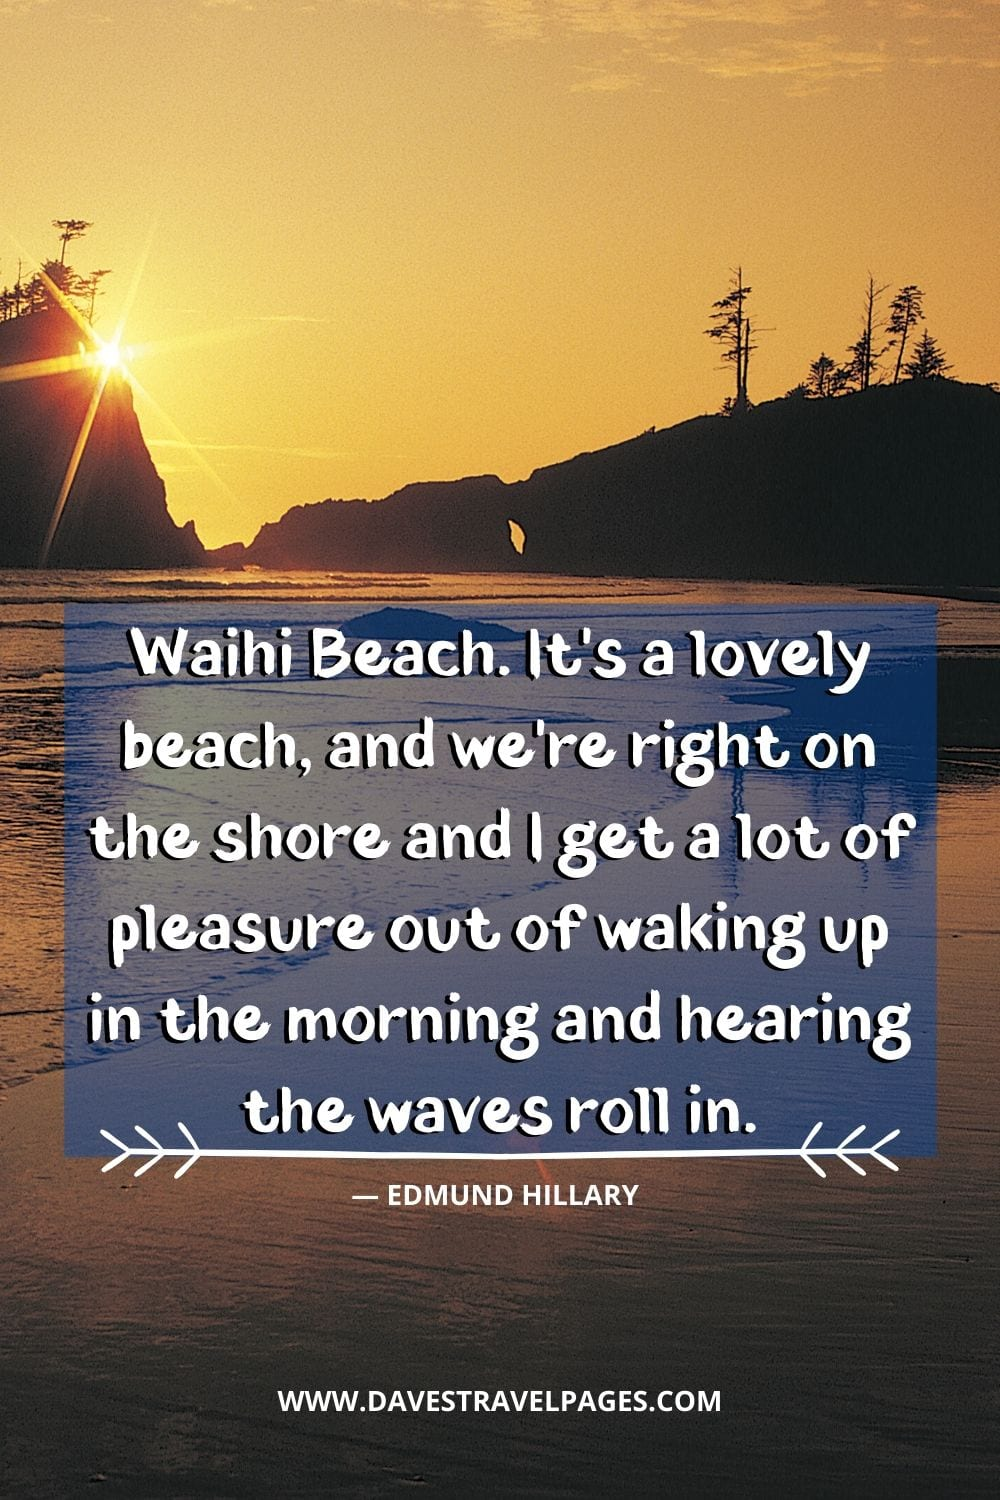 """Waihi Beach. It's a lovely beach, and we're right on the shore and I get a lot of pleasure out of waking up in the morning and hearing the waves roll in."" - Edmund Hillary"